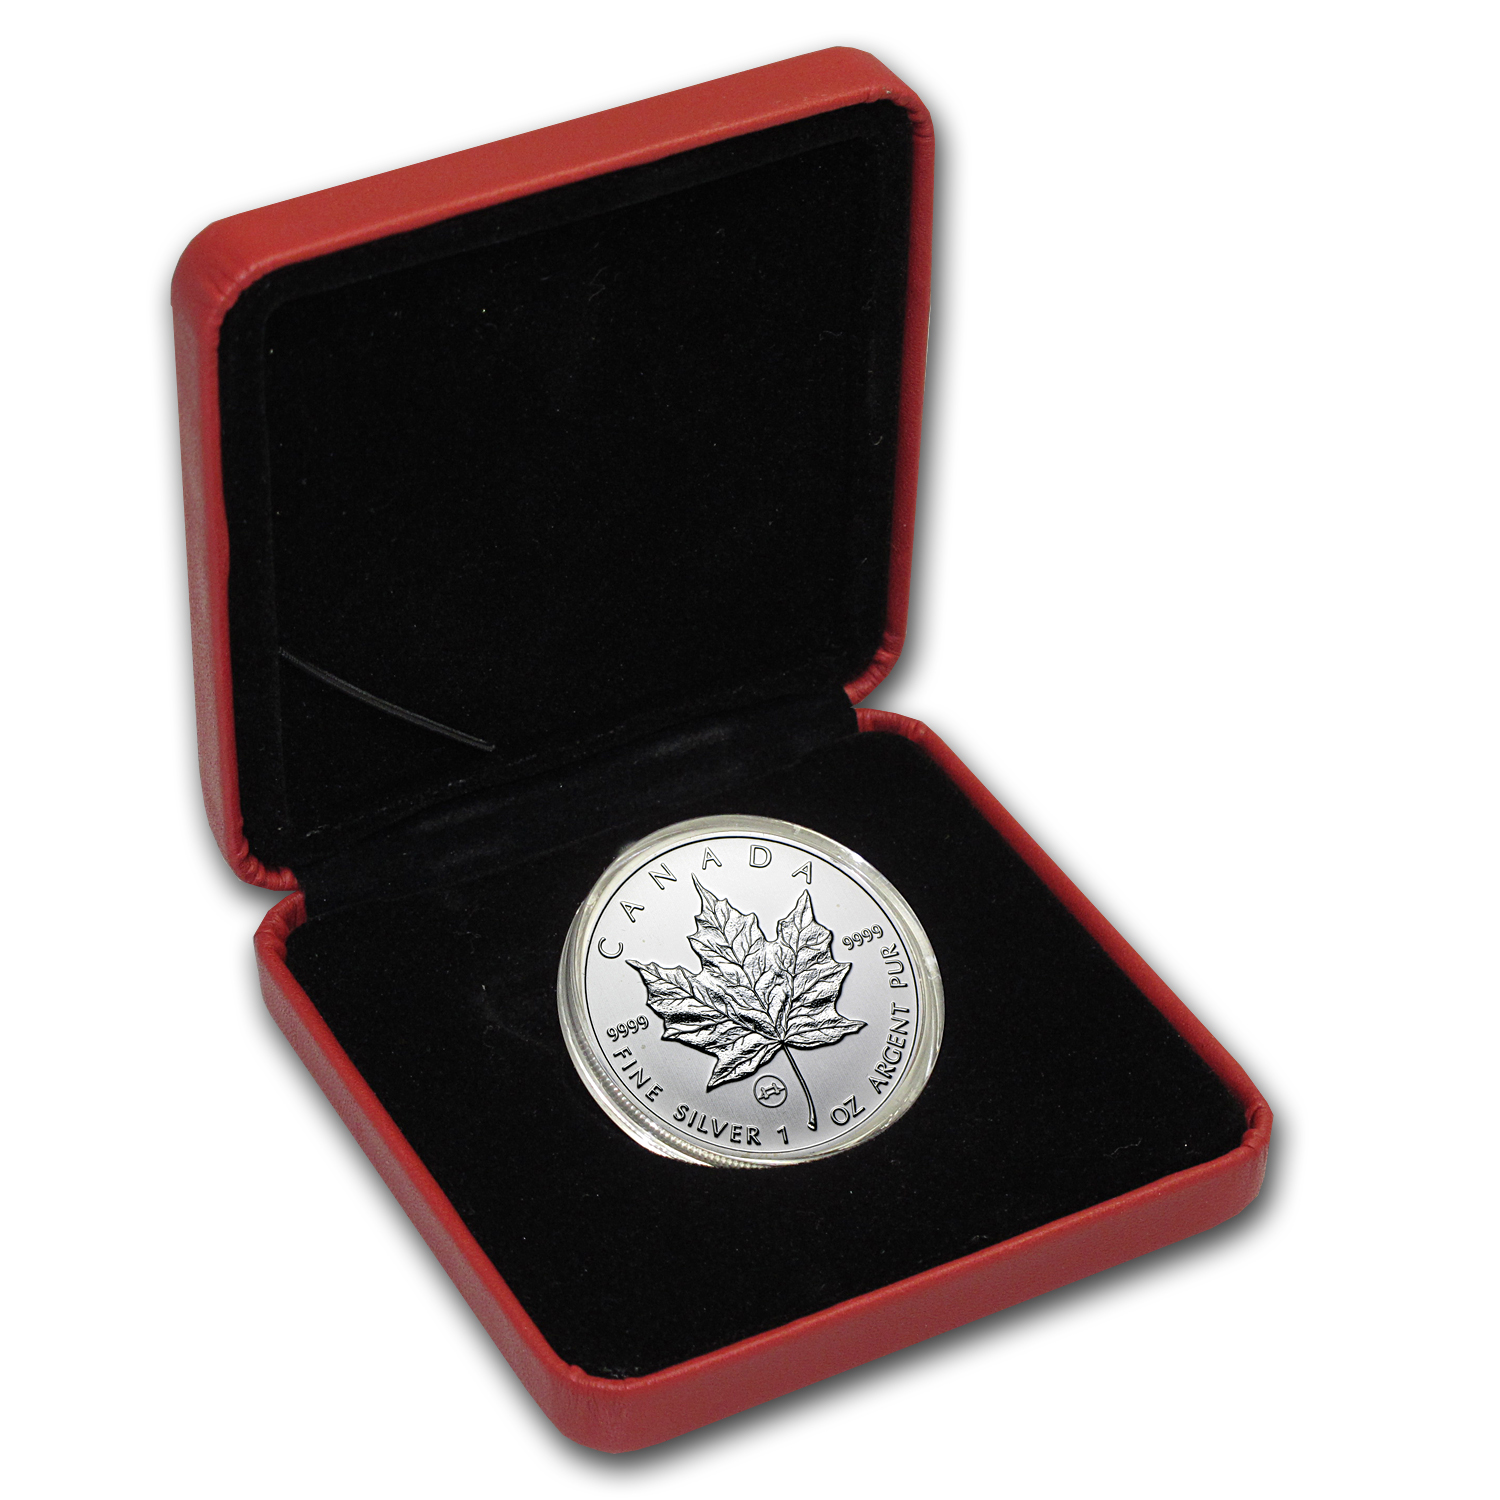 2009 Canada 1 oz Silver Maple Leaf Tower Bridge Privy